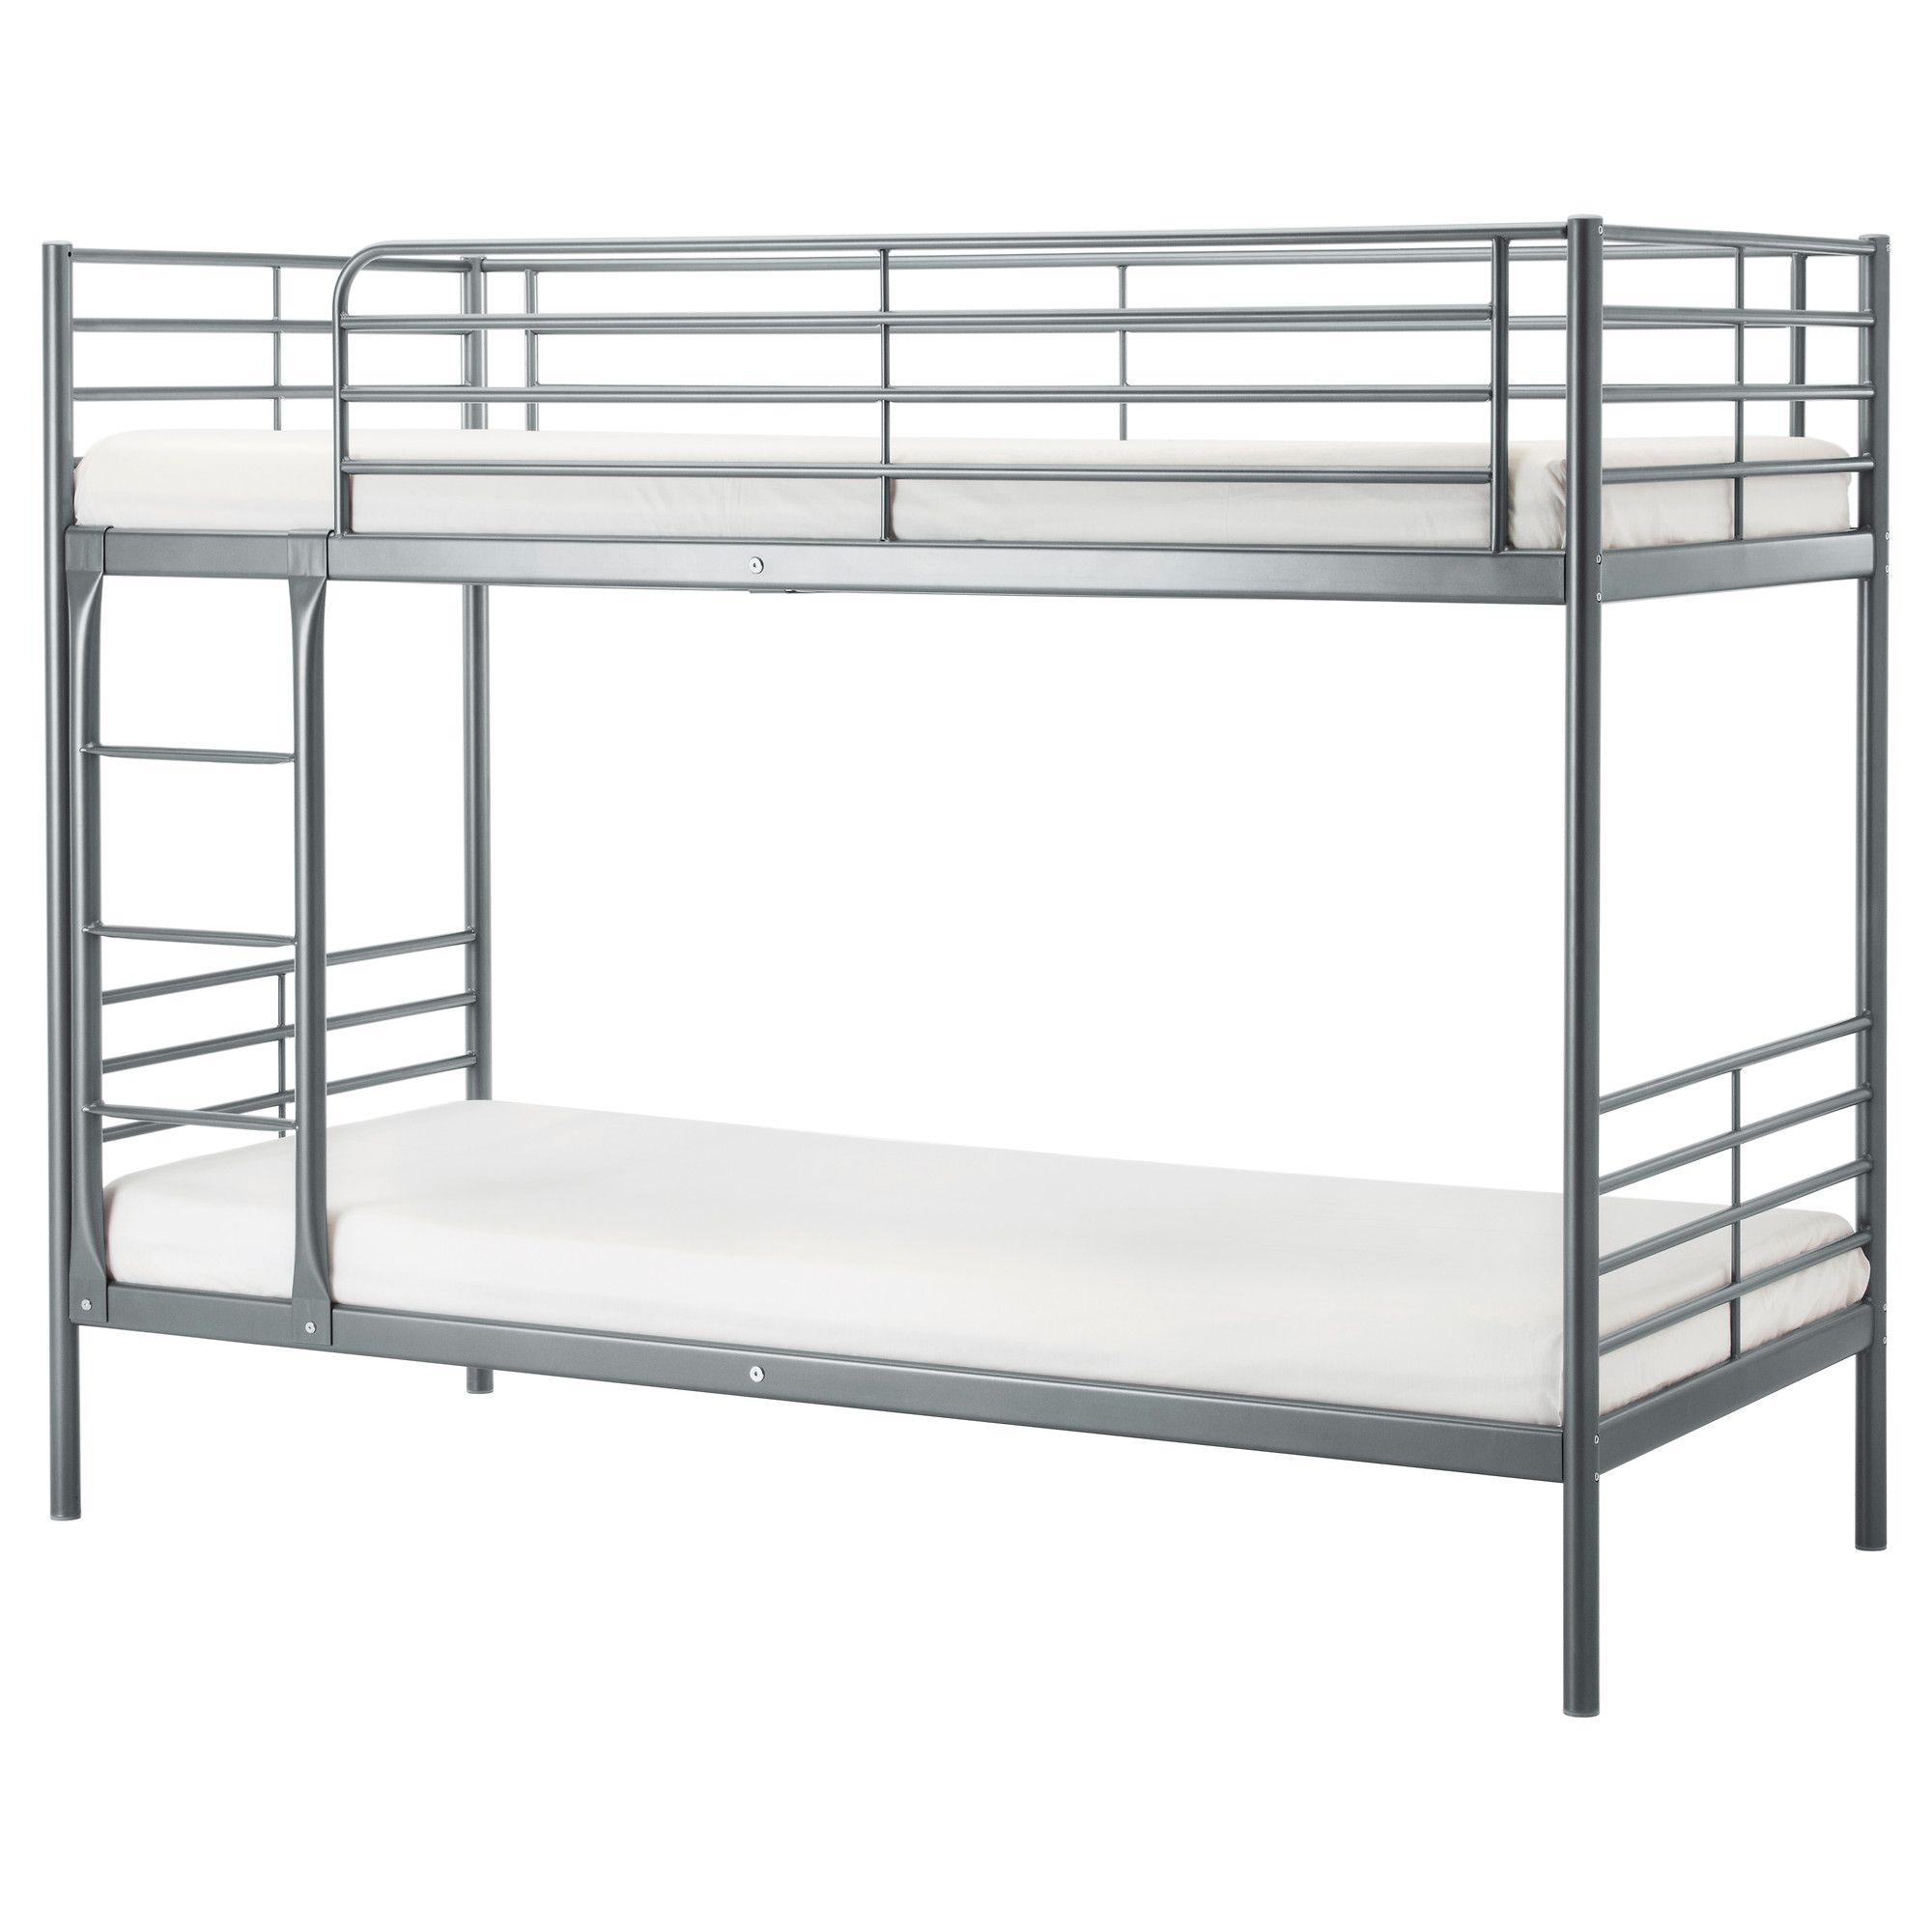 svÄrta bunk bed frame, silver color   bunk bed, industrial bunk ... - Letto Ikea Kritter